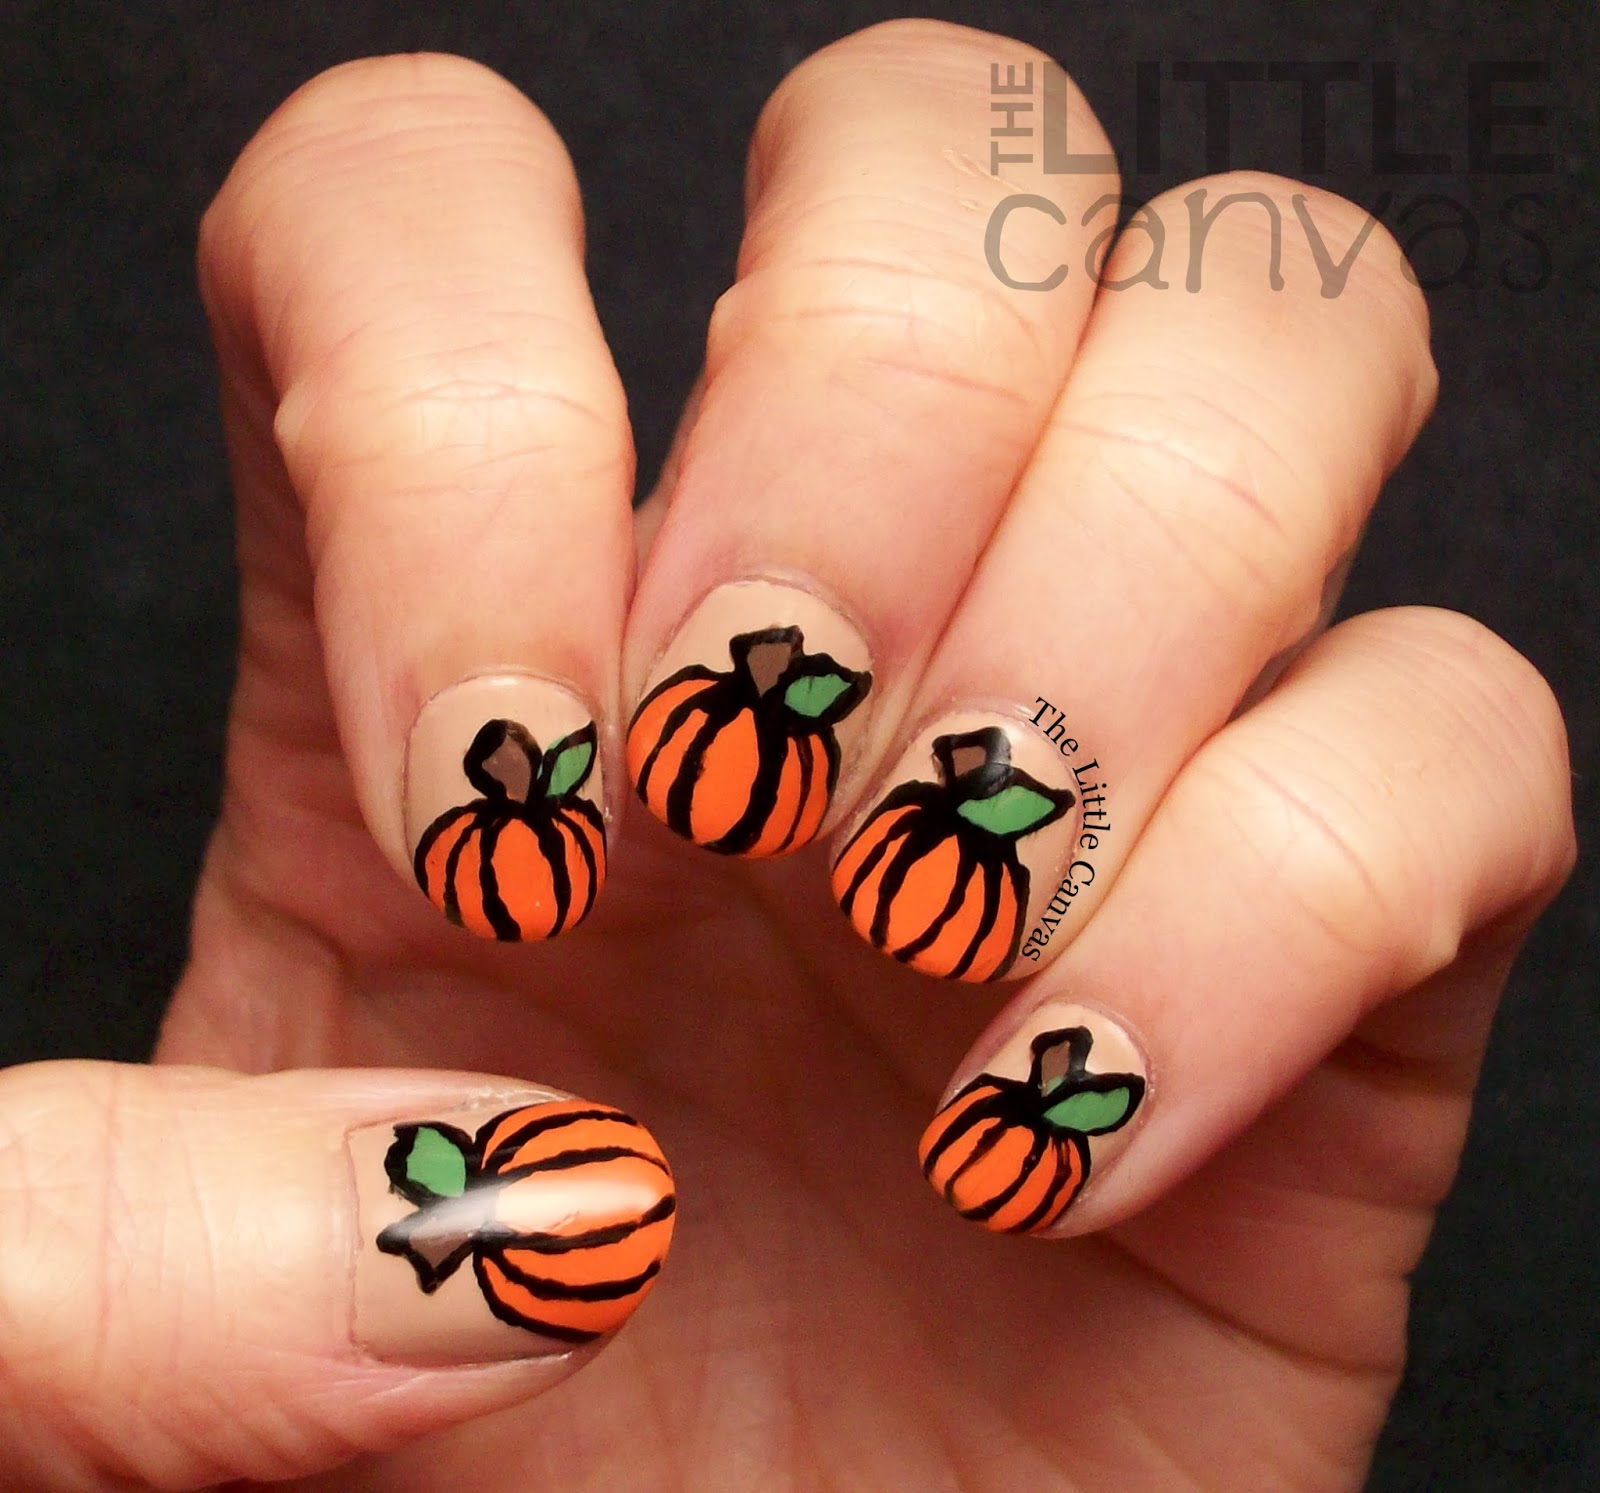 Polishpals thanksgiving pumpkin nail art the little canvas i am happy my catching fire manicure failedlets take a look at my cute little pumpkins prinsesfo Choice Image